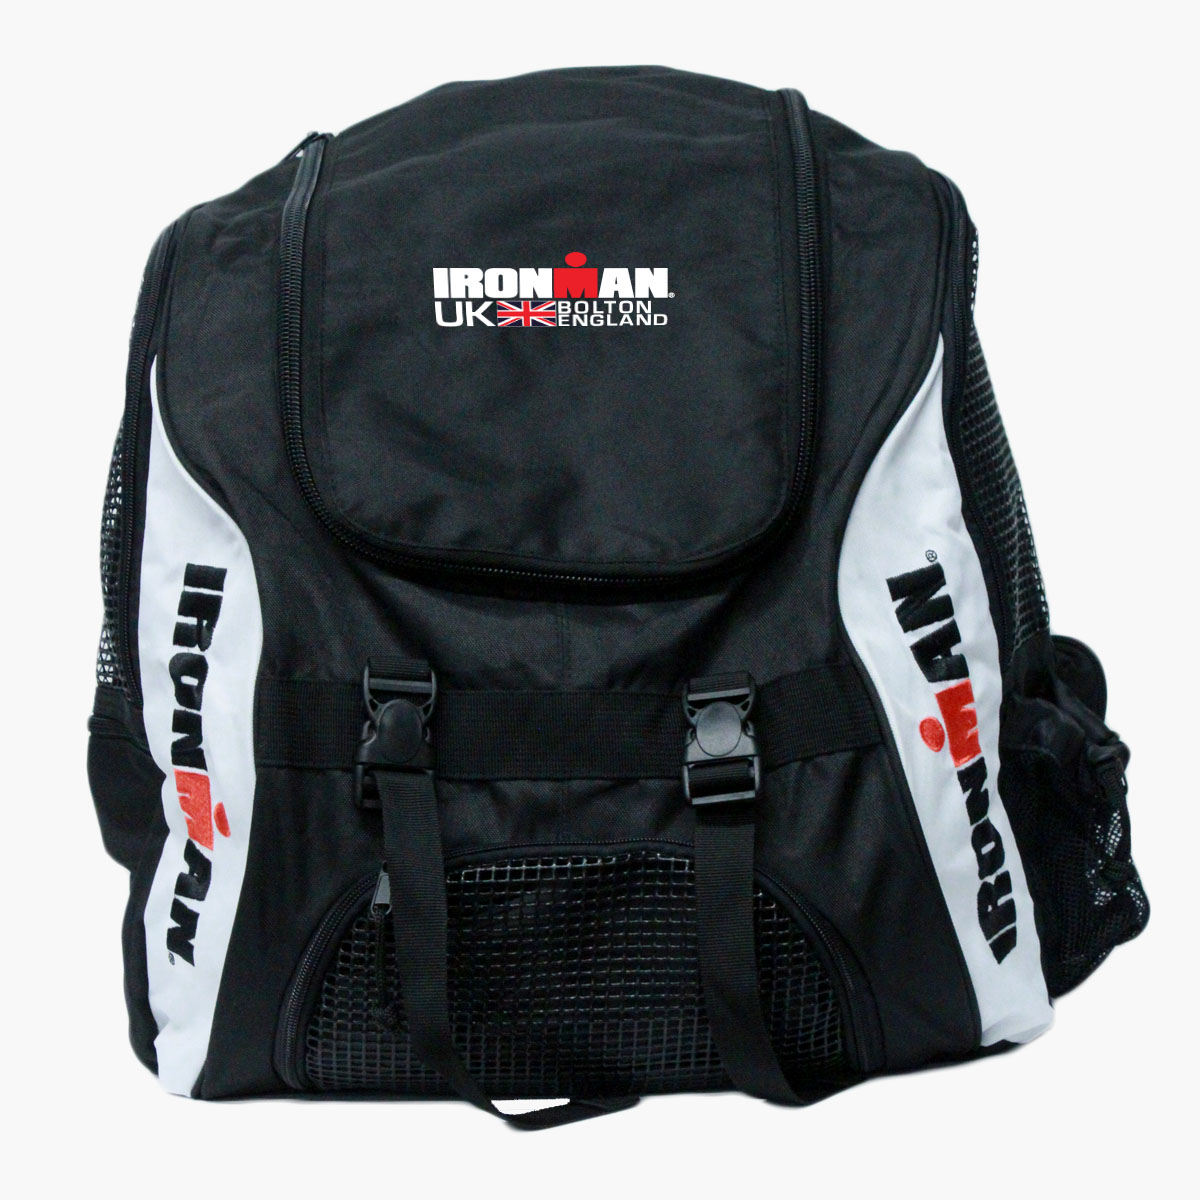 IRONMAN UK Event Backpack